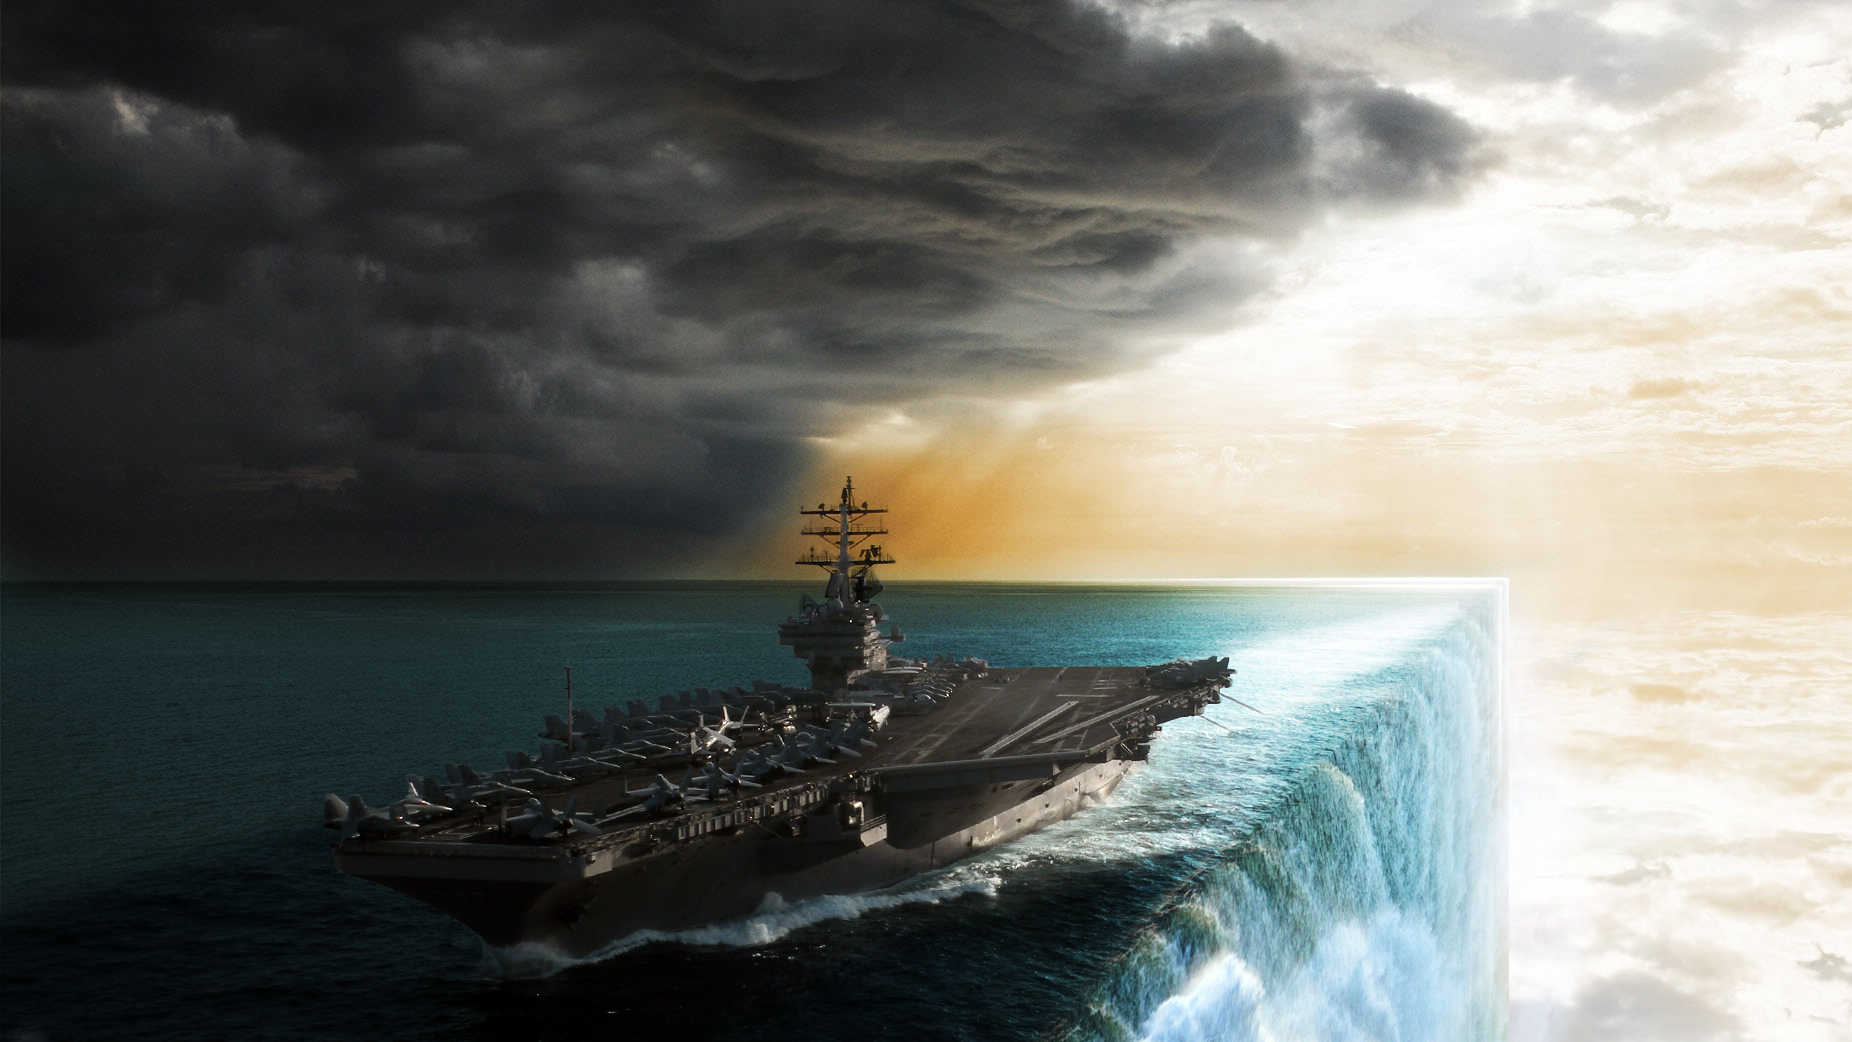 The Navy Patrolling The Edge Of The World By Coucoucmoa On Deviantart